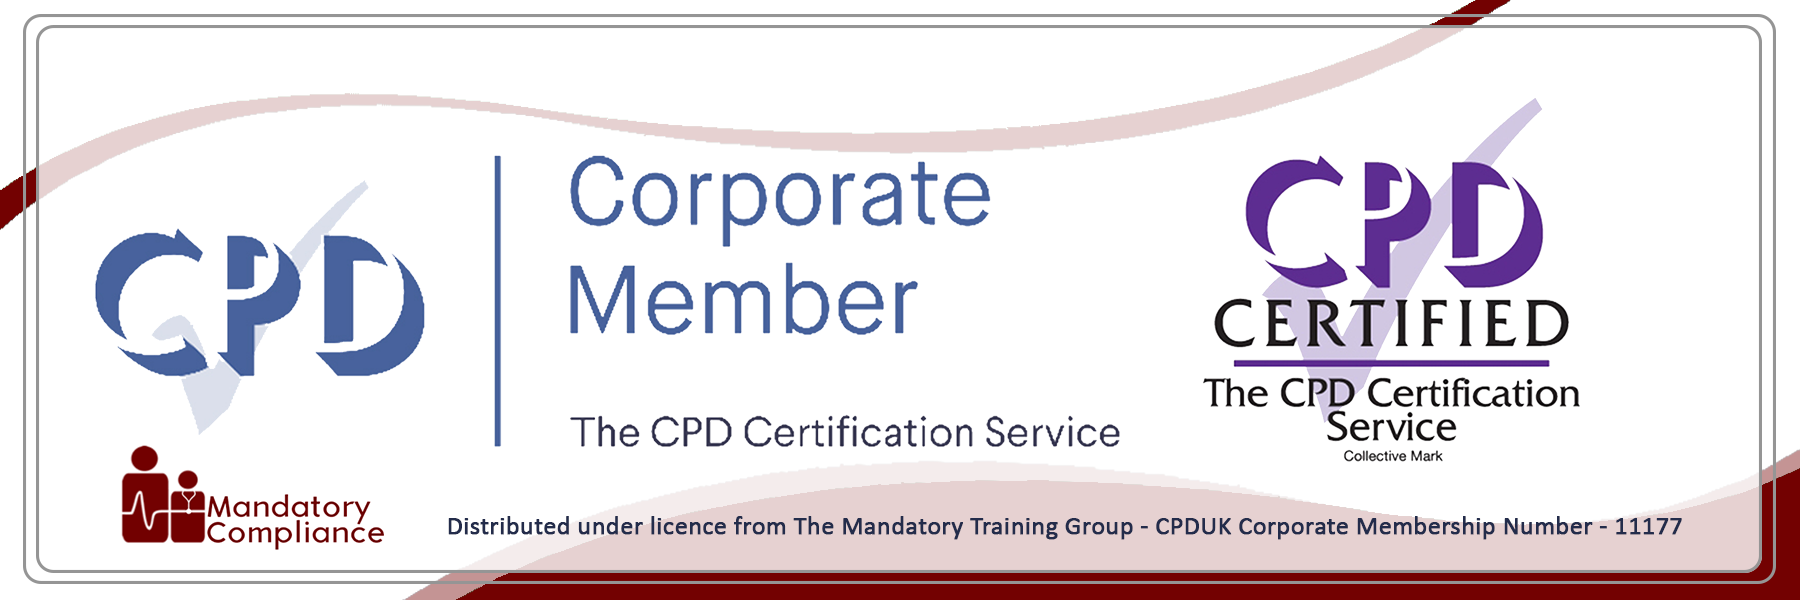 Care Certificate - 15 Standards - Train the Trainer - The Mandatory Compliance UK -